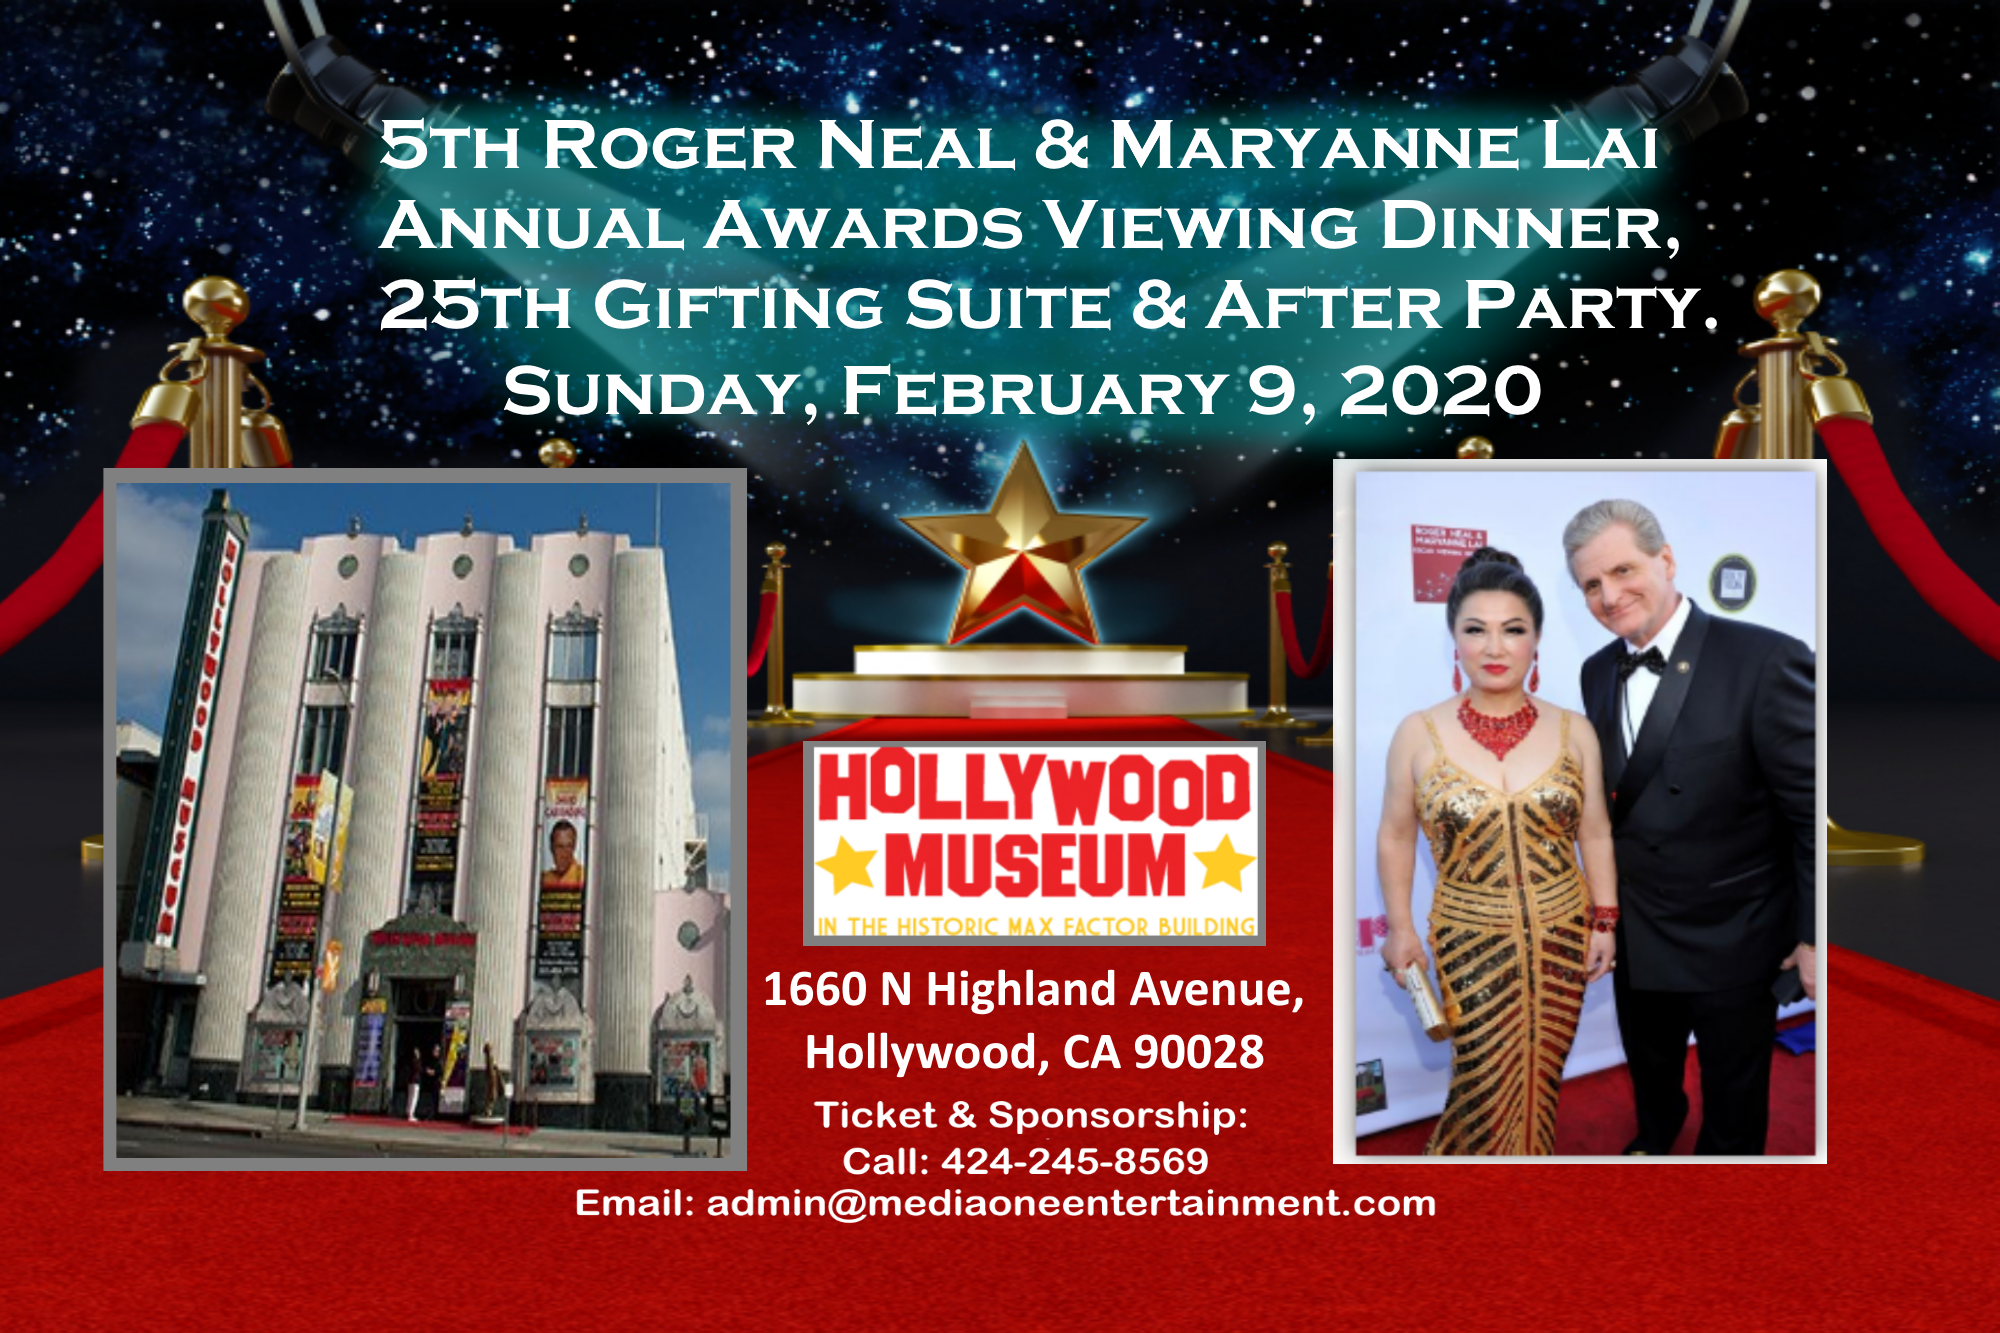 Your Invited The 5th Annual Roger Neal Maryanne Lai Oscar Viewing Dinner 25th Annual Gifting Suite After Party Sunday February 9 2020 Media One Entertainment